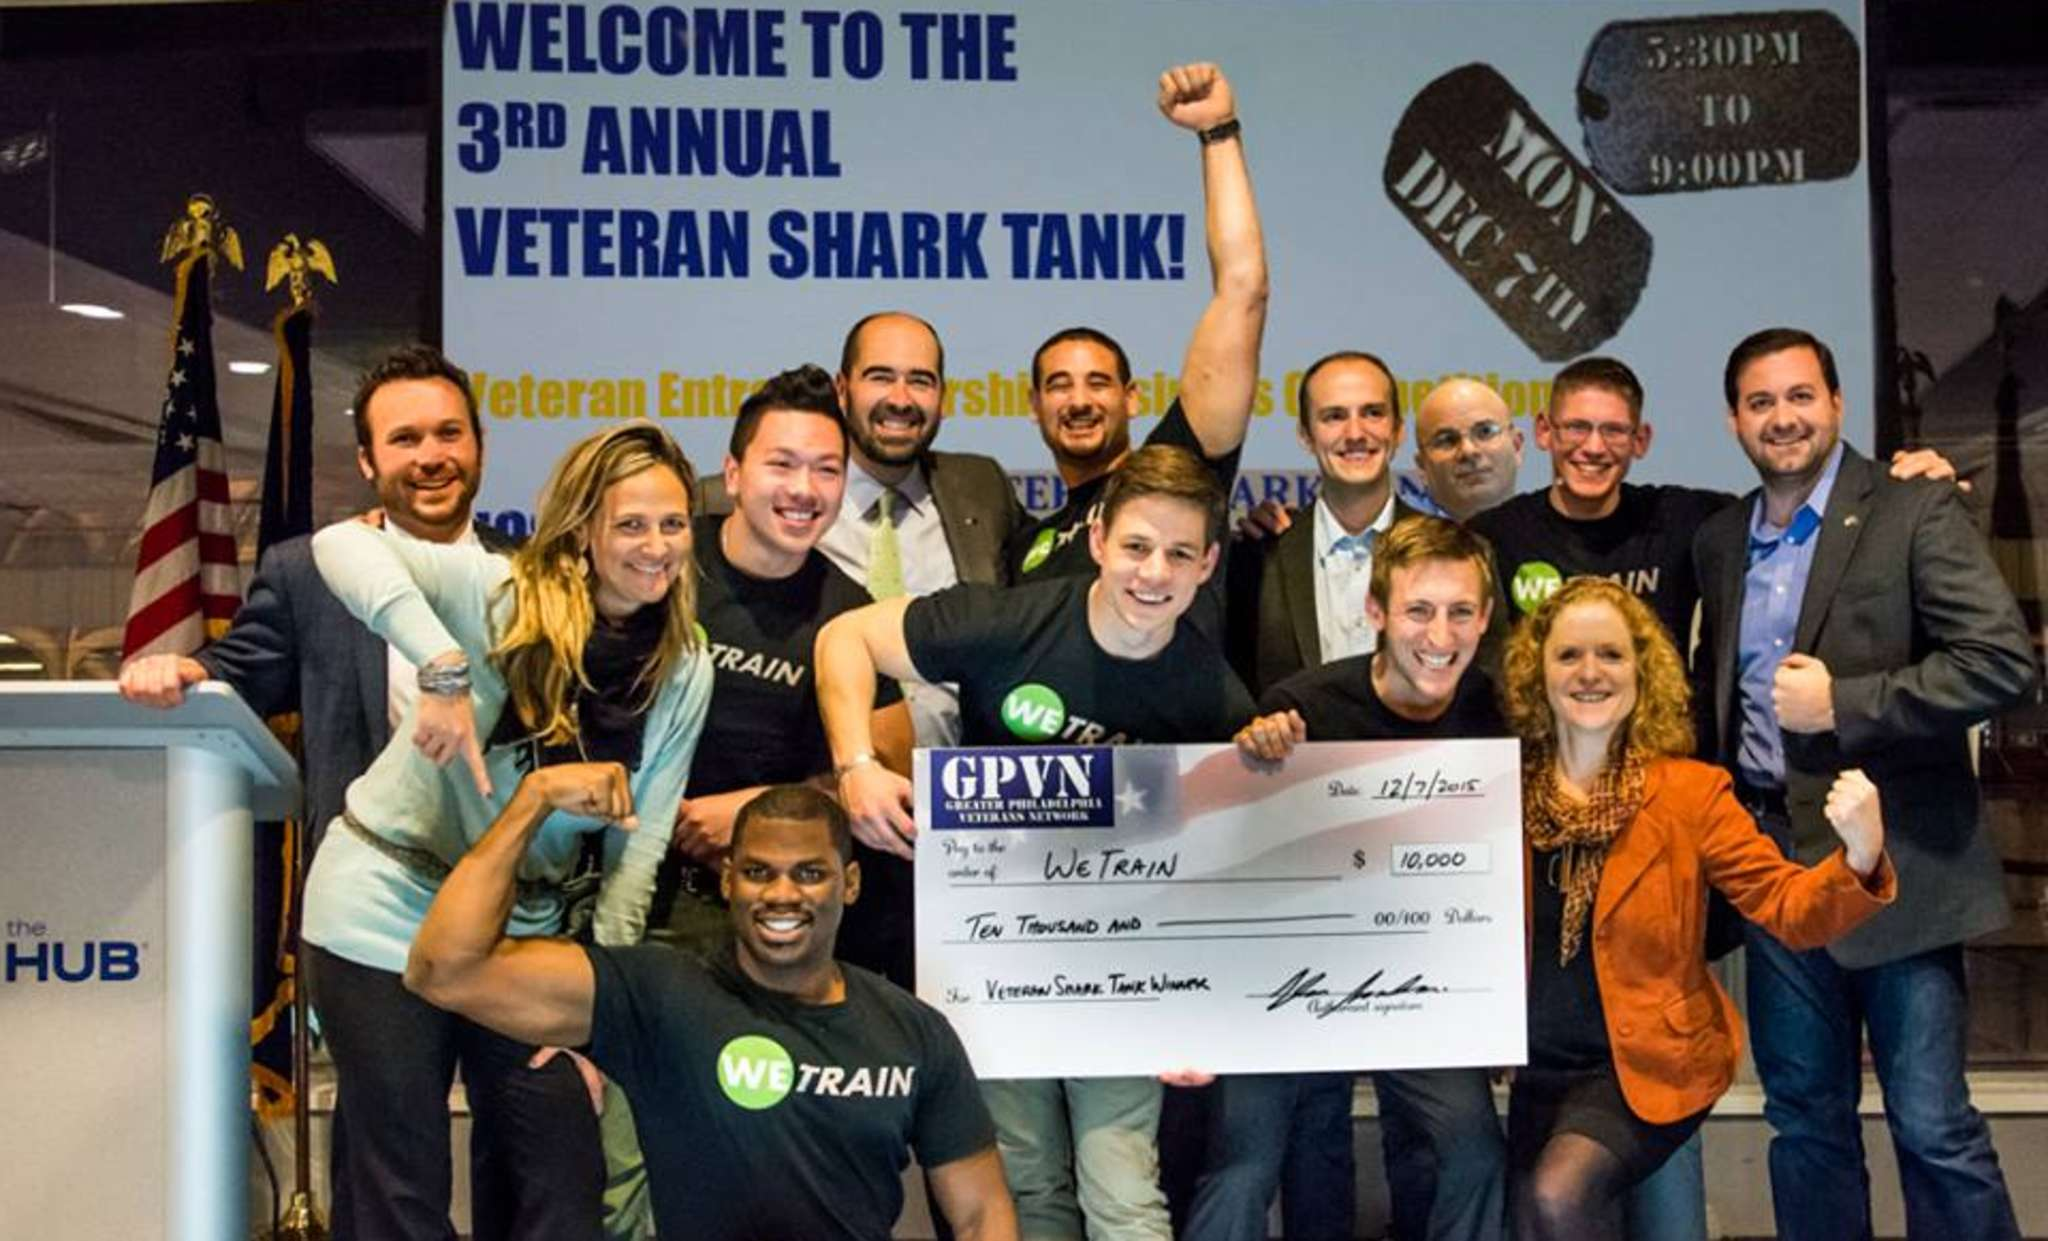 Philadelphia-based WeTrain won $10,000 in the Veterans Shark Tank competition.